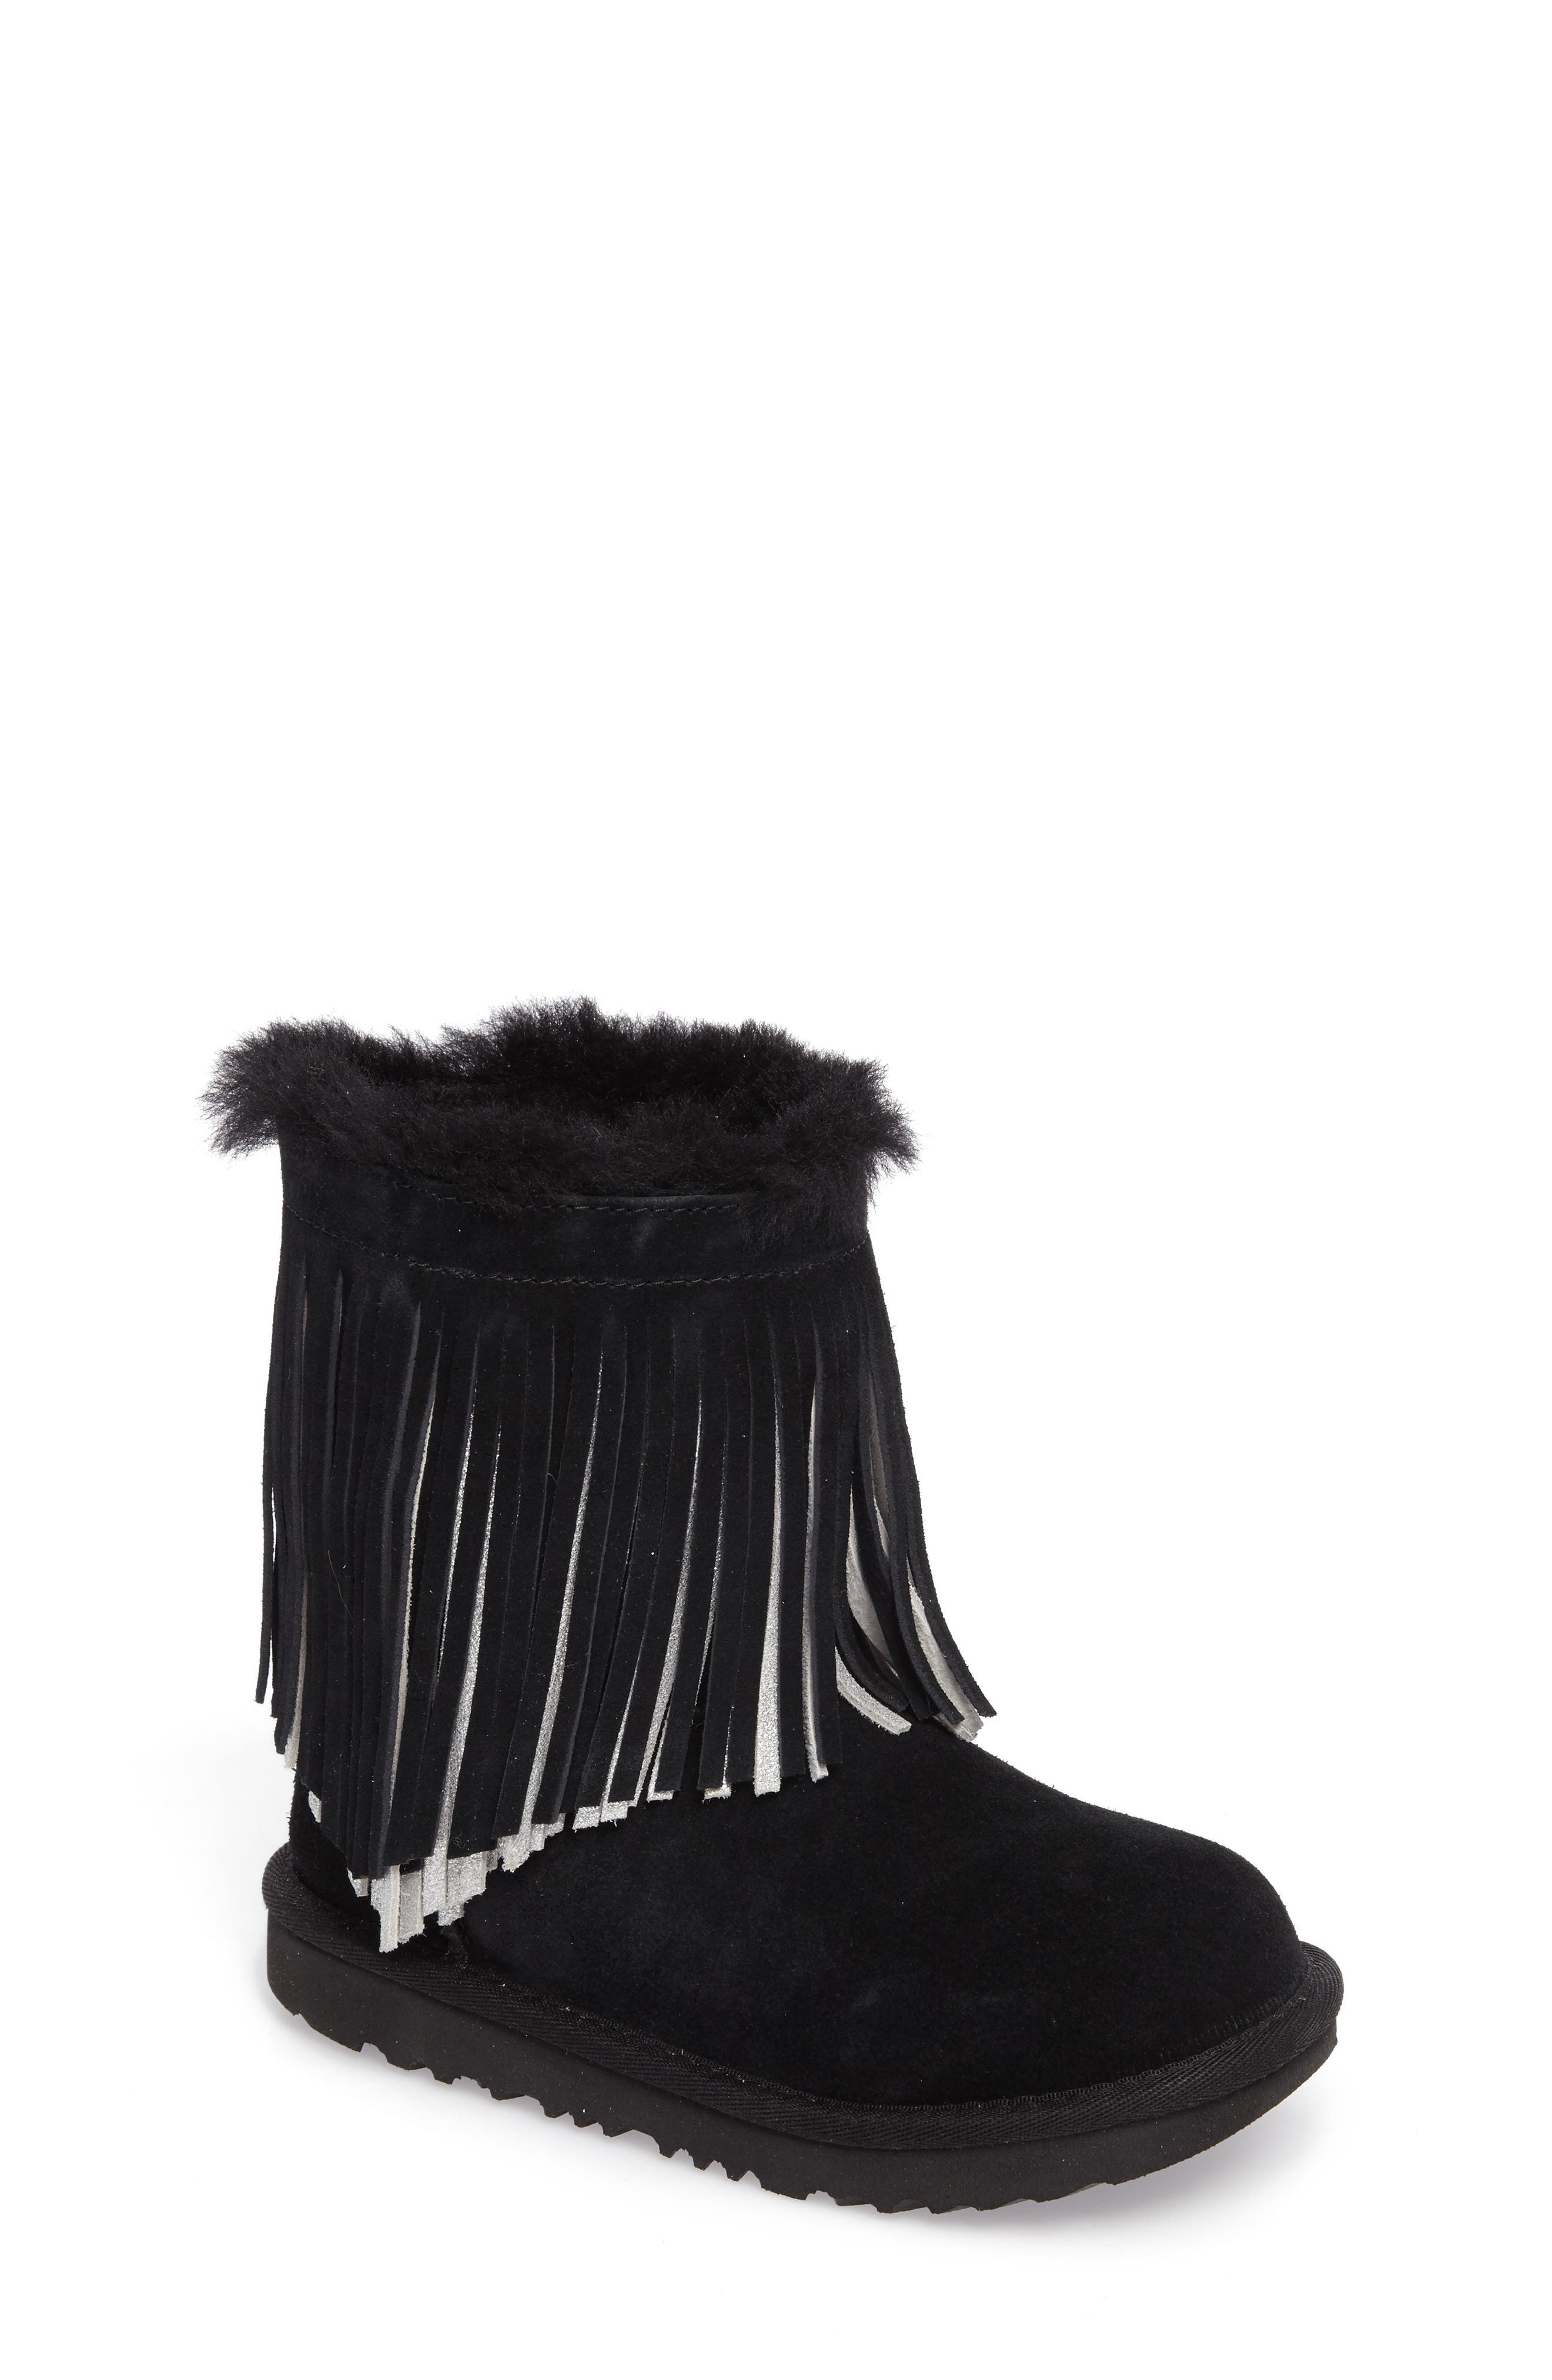 Alternate Image 1 Selected - UGG® Classic II Short Fringe Water Resistant Genuine Shearling Boot (Walker, Toddler, Little Kid & Big Kid)